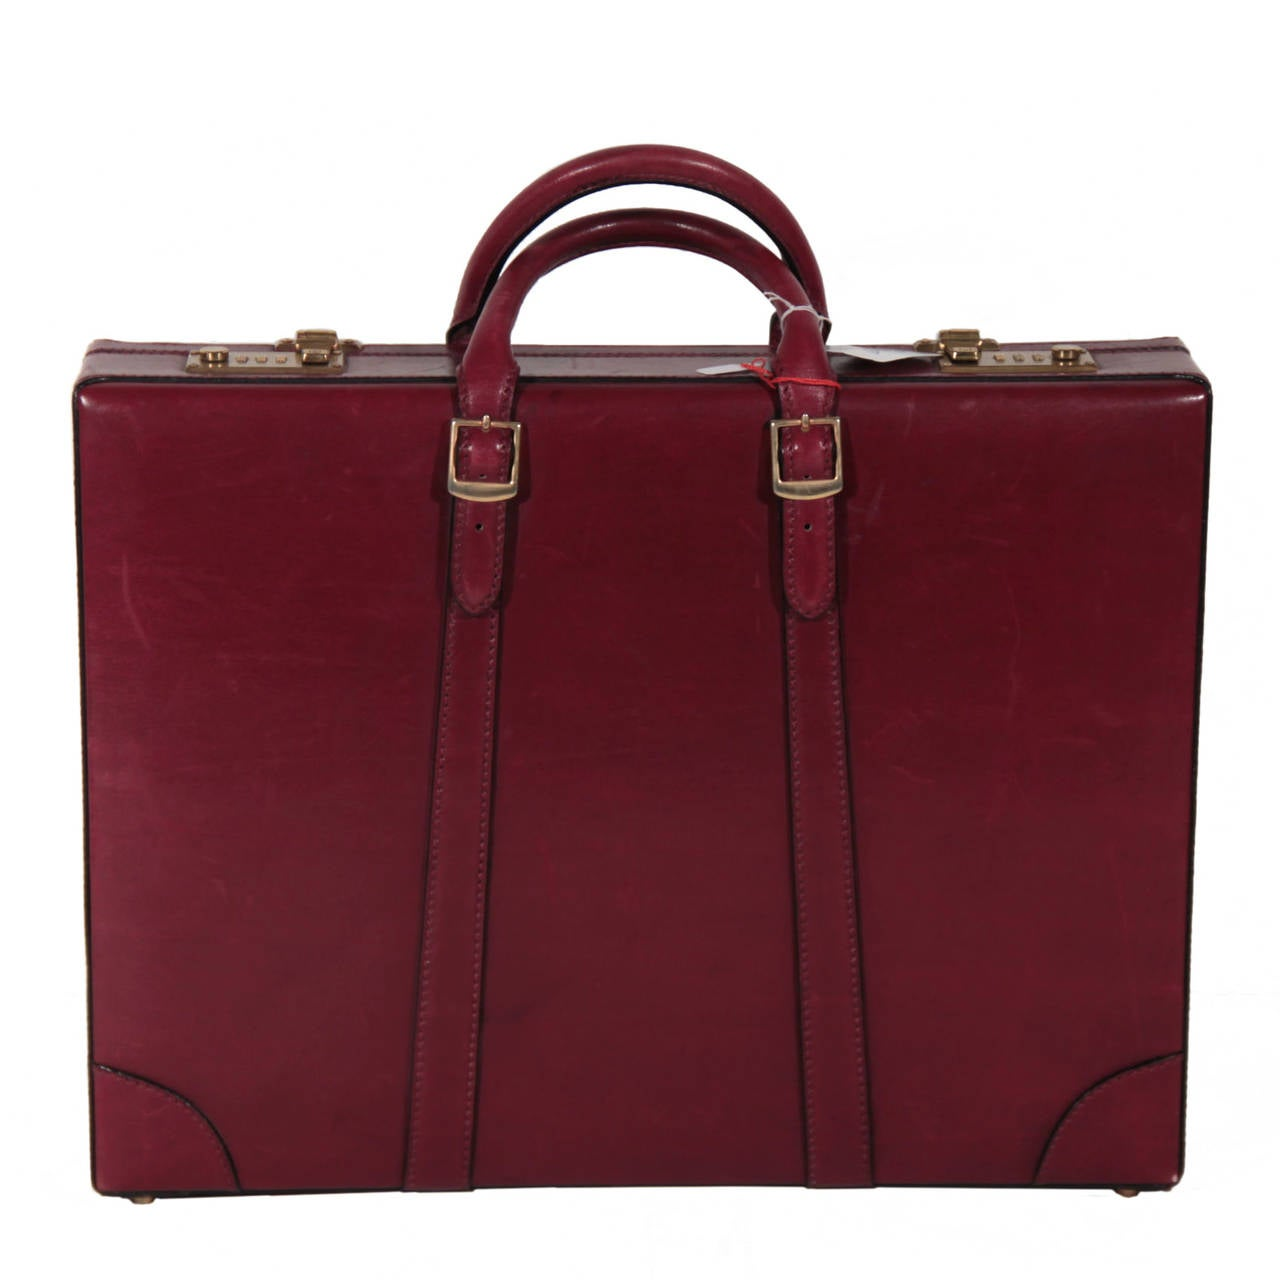 GUCCI Italian VINTAGE Burgundy Leather HARD SIDE BRIEFCASE Work Bag HANDBAG For Sale